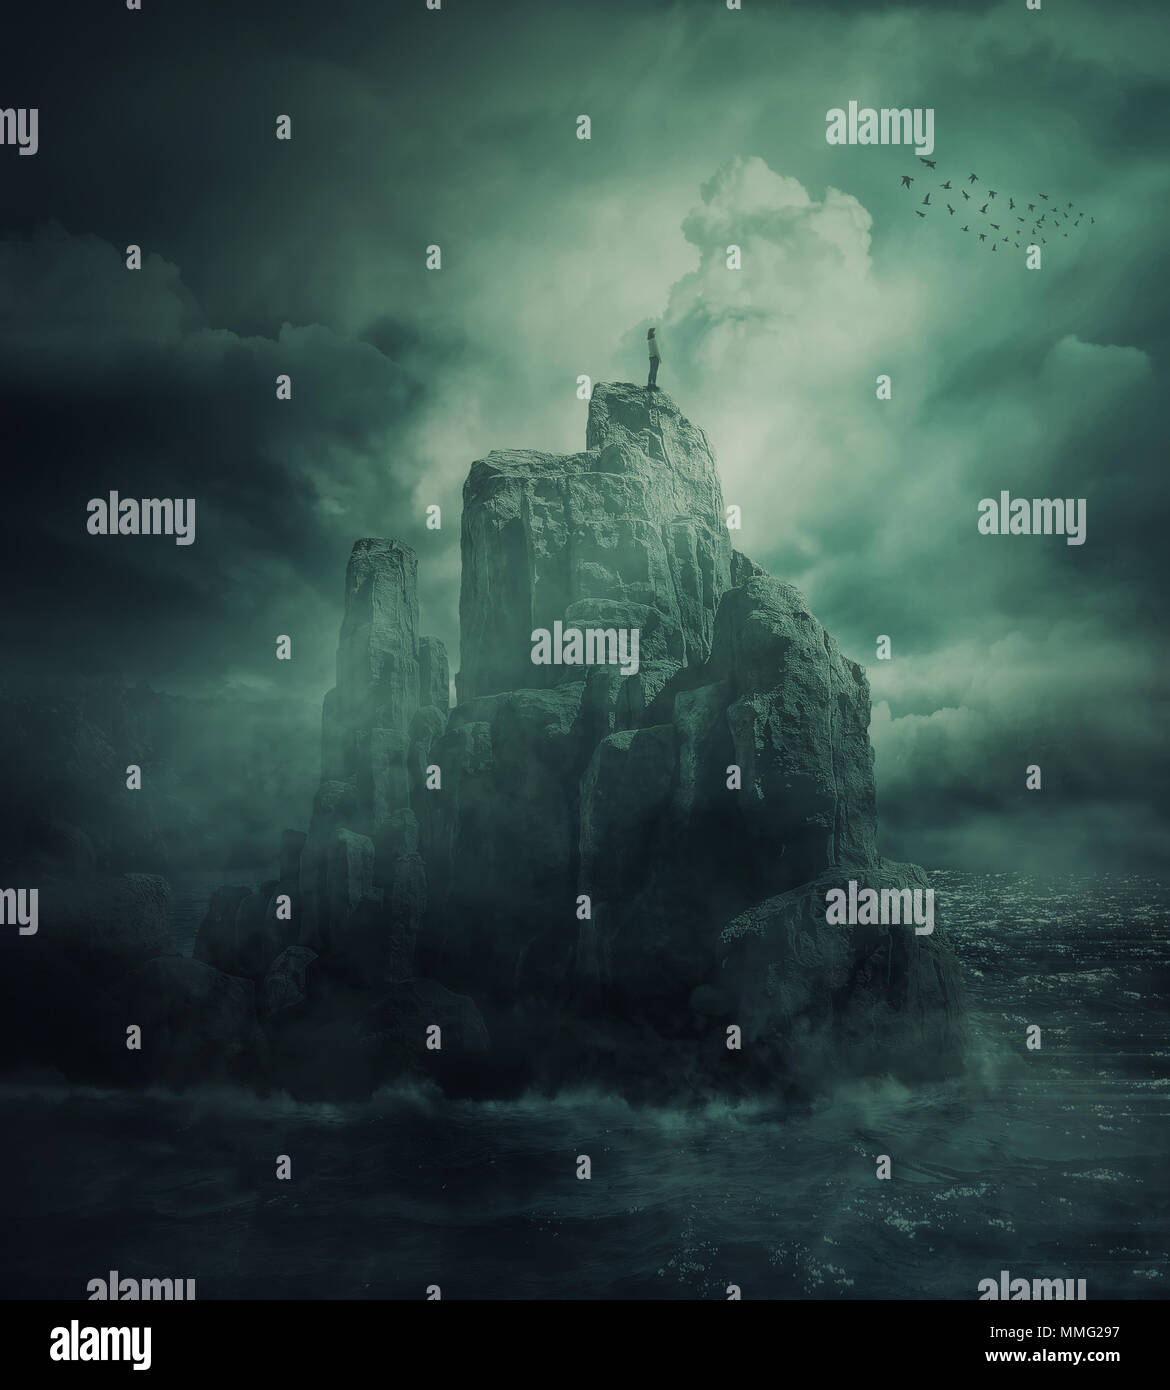 Surreal view as a lonely girl stand on the top of a cliff surrounded by the sea water watch a flock of birds flying. Risky meditation, metaphor for co - Stock Image